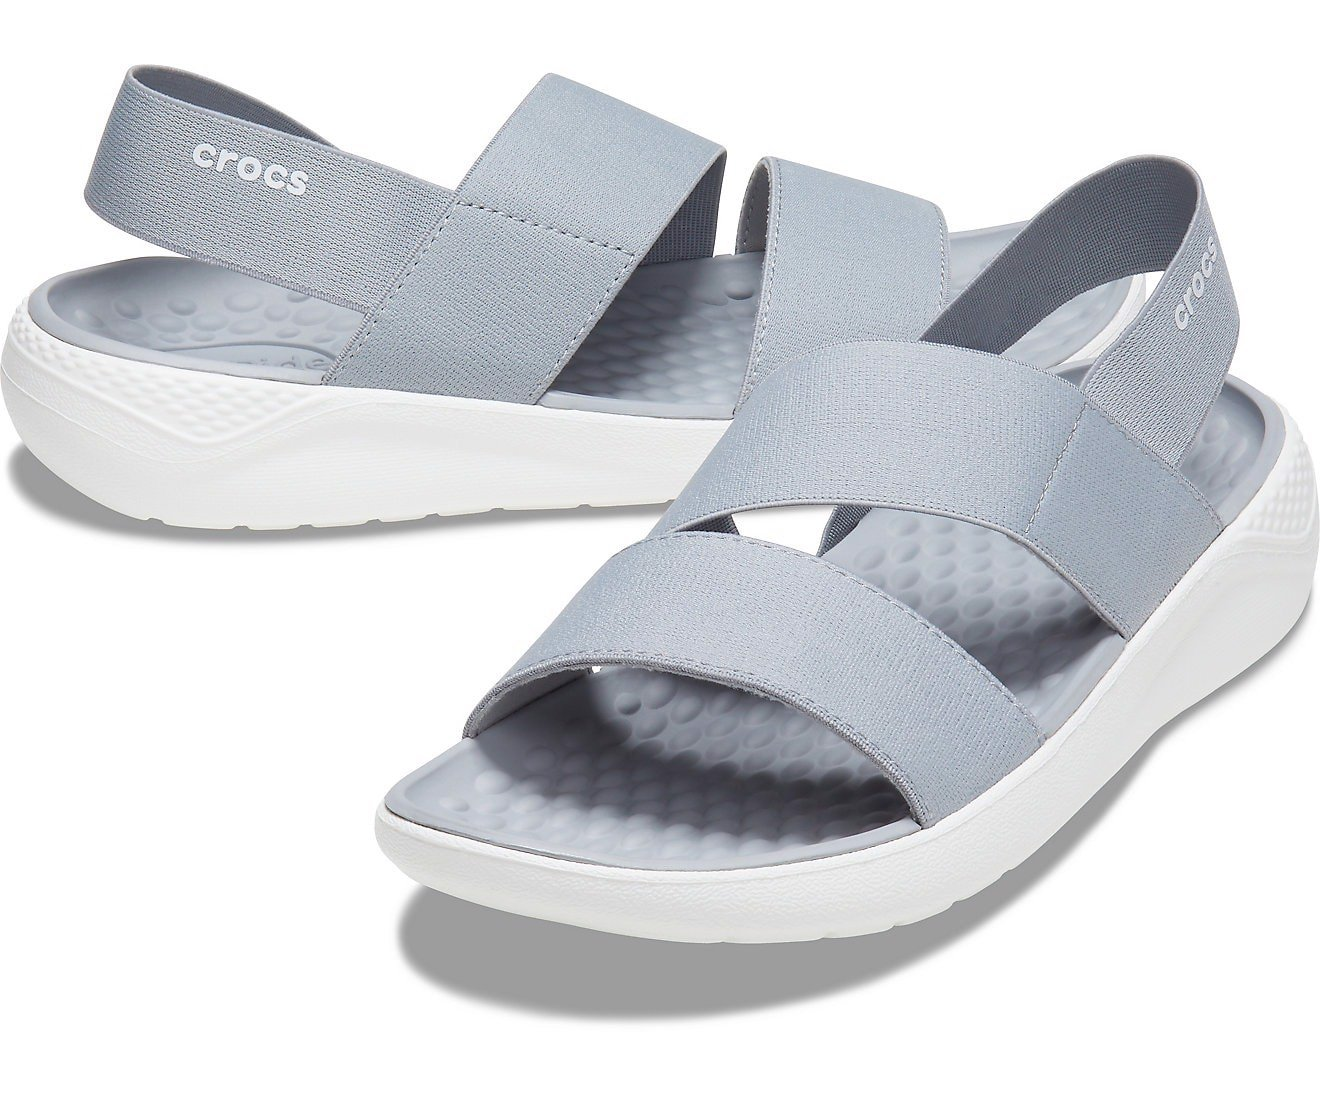 Crocs - Giày sandal nữ Literide Stretch Sandal Women Light Grey/White - 25060